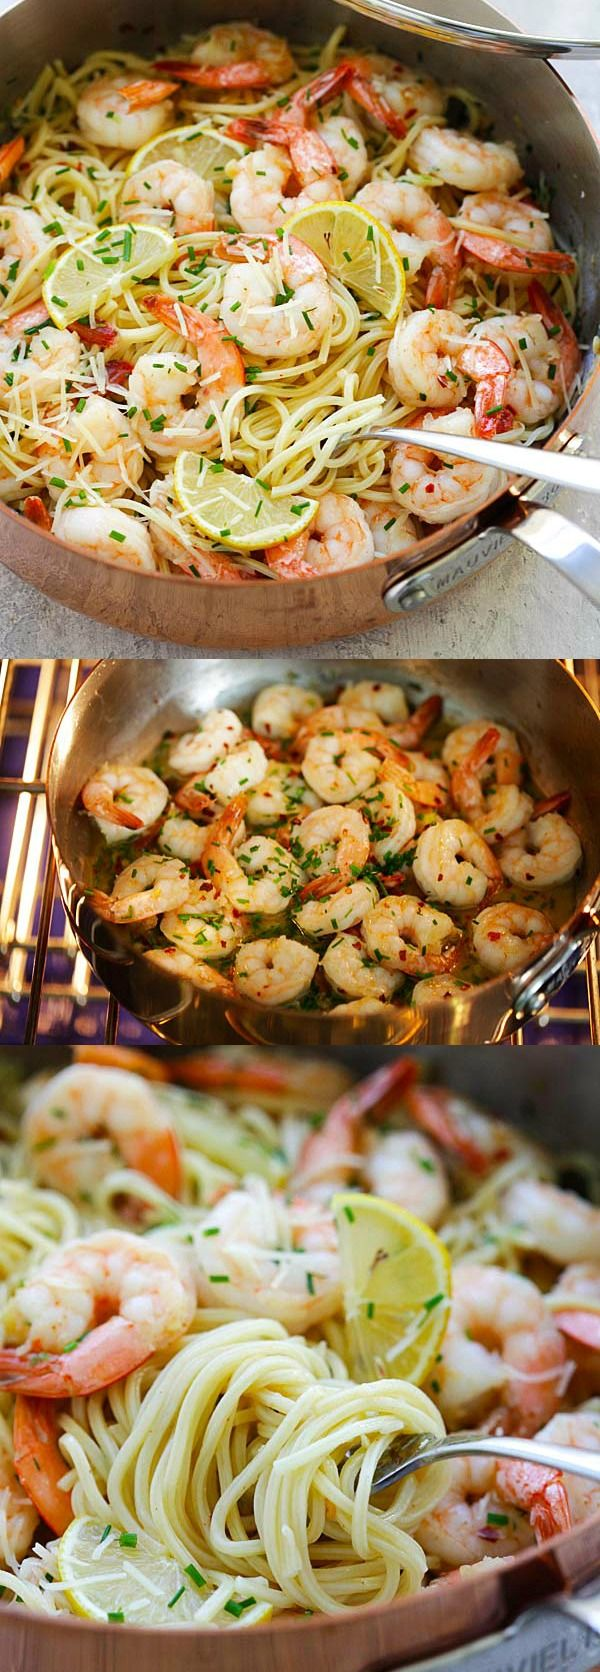 Garlic Chive Butter Shrimp Pasta – easy delicious pasta loaded with garlic chive butter shrimp. Weeknight dinner is a breeze with Mauviel saute pan | rasamalaysia.com #ad